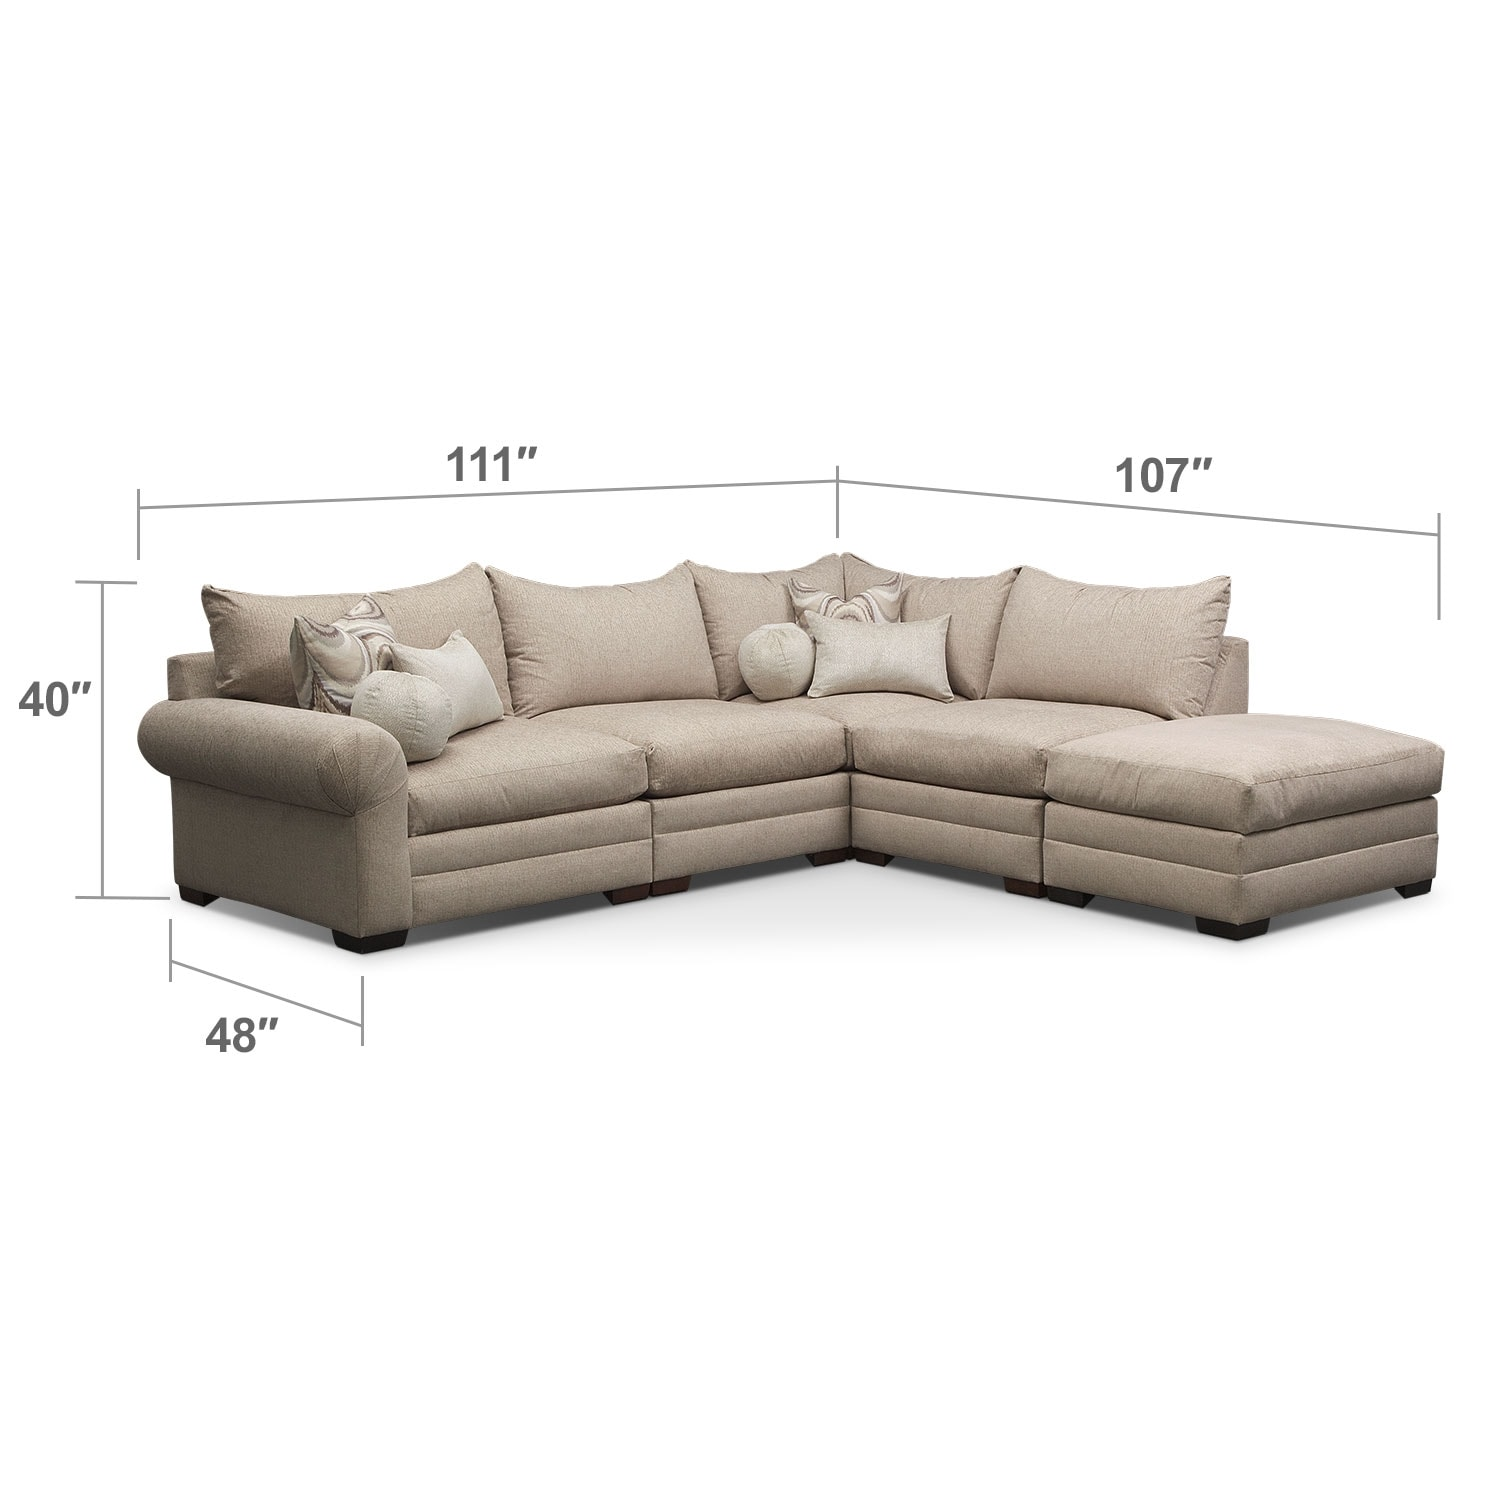 Living Room Furniture - Wilshire 5-Piece Right-Facing Sectional - Cream